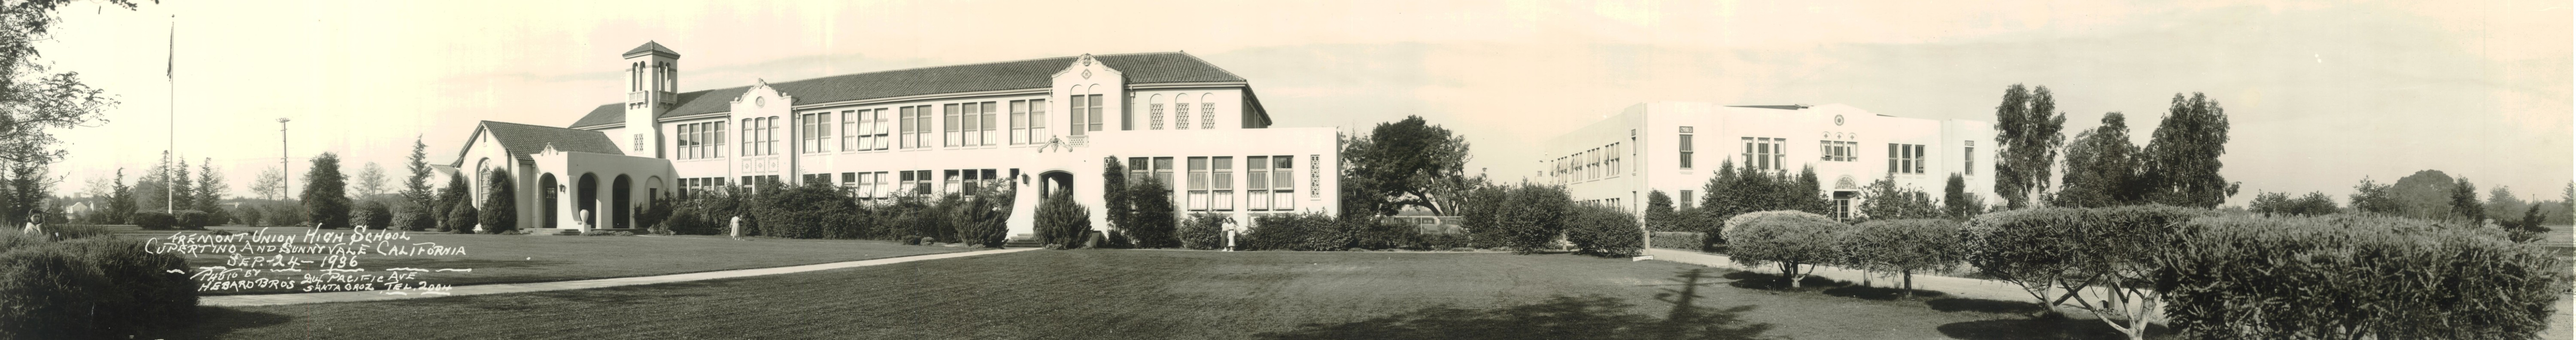 Photo of the Fremont High School campus taken in 1936